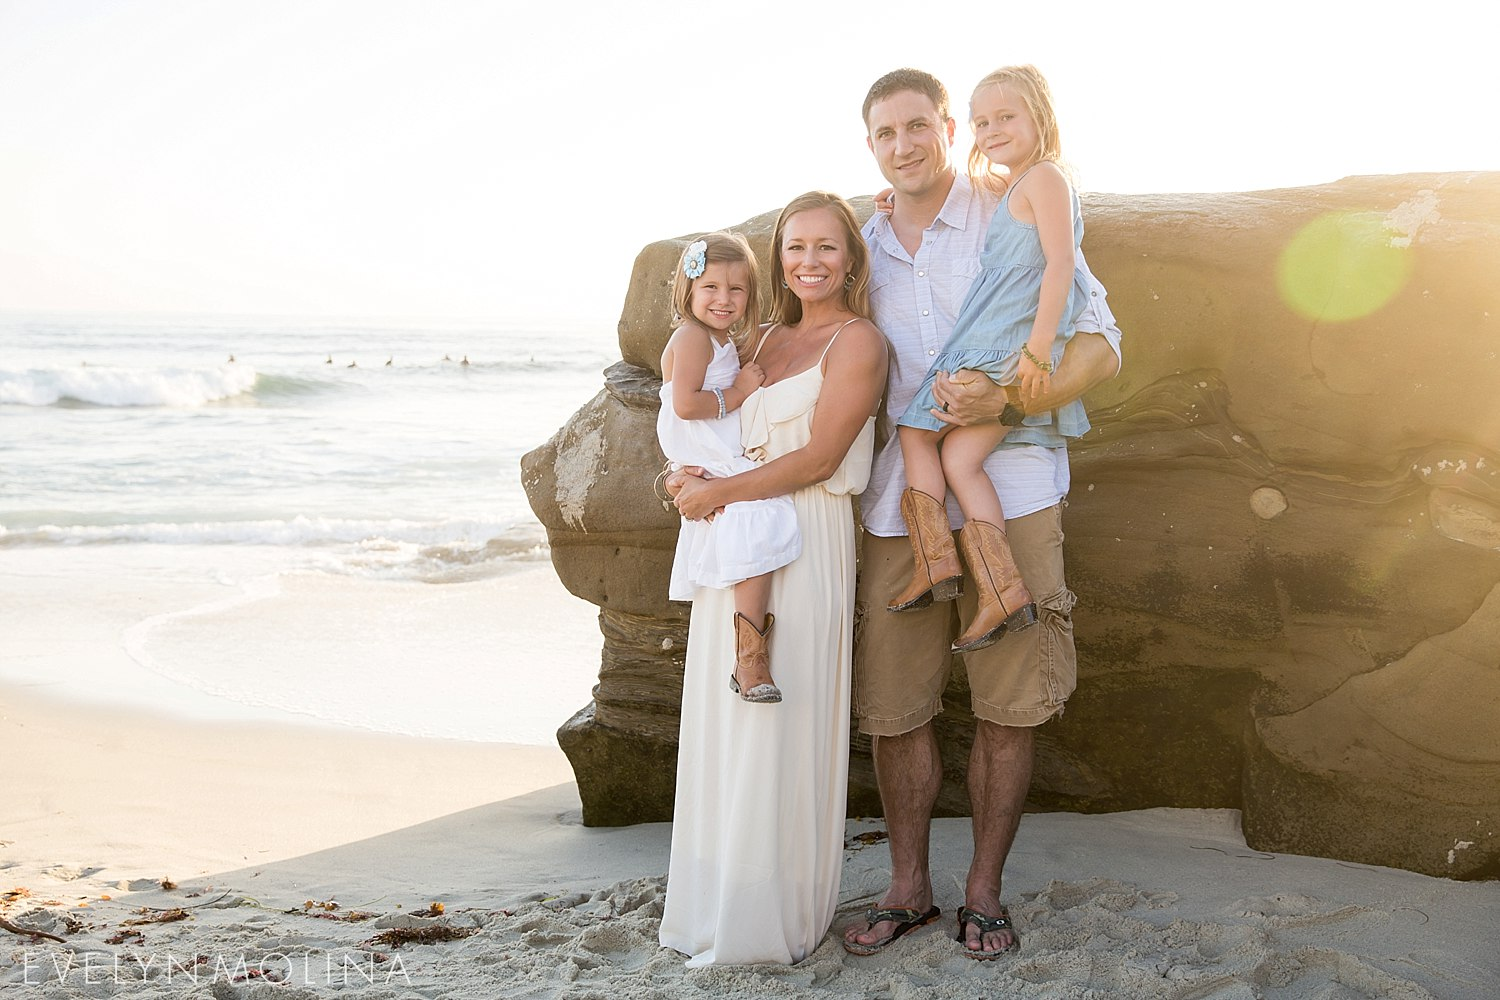 La-Jolla-Family-Photographer-Bast_0023.jpg